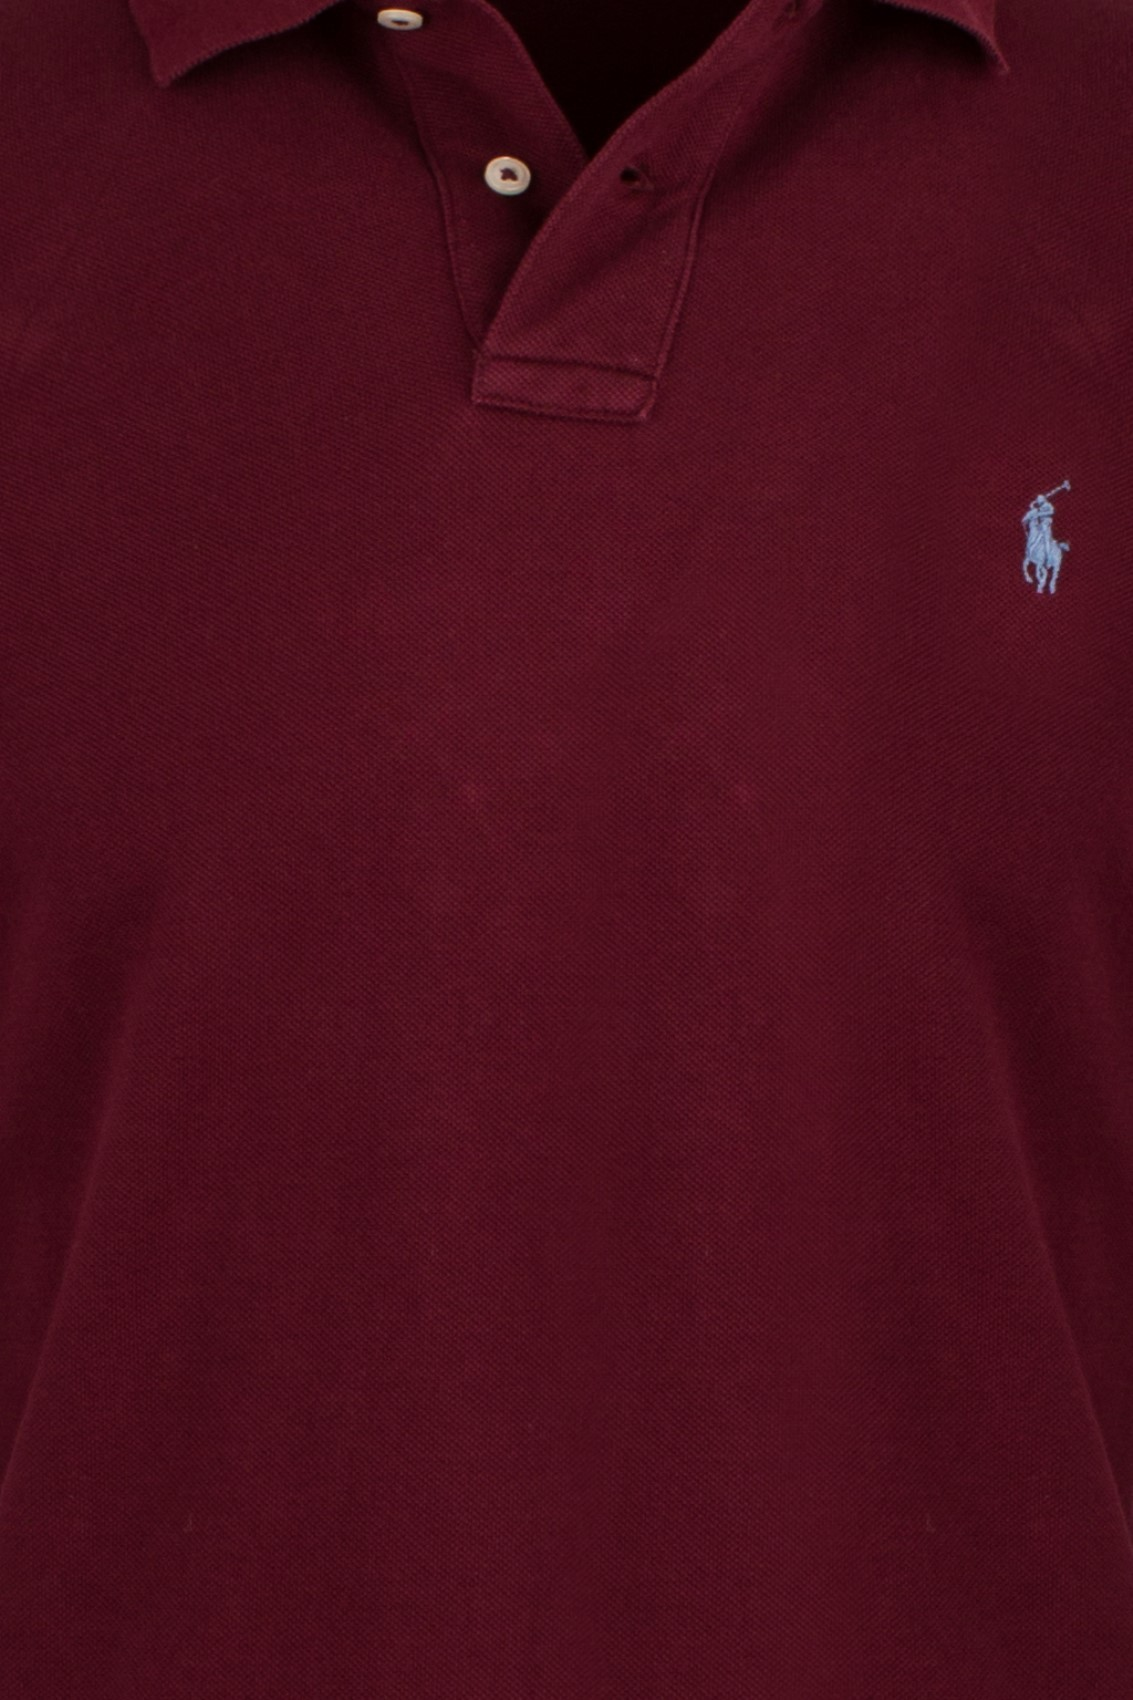 ac793f2b688f97 Ralph Lauren polo bordeaux custom slim fit